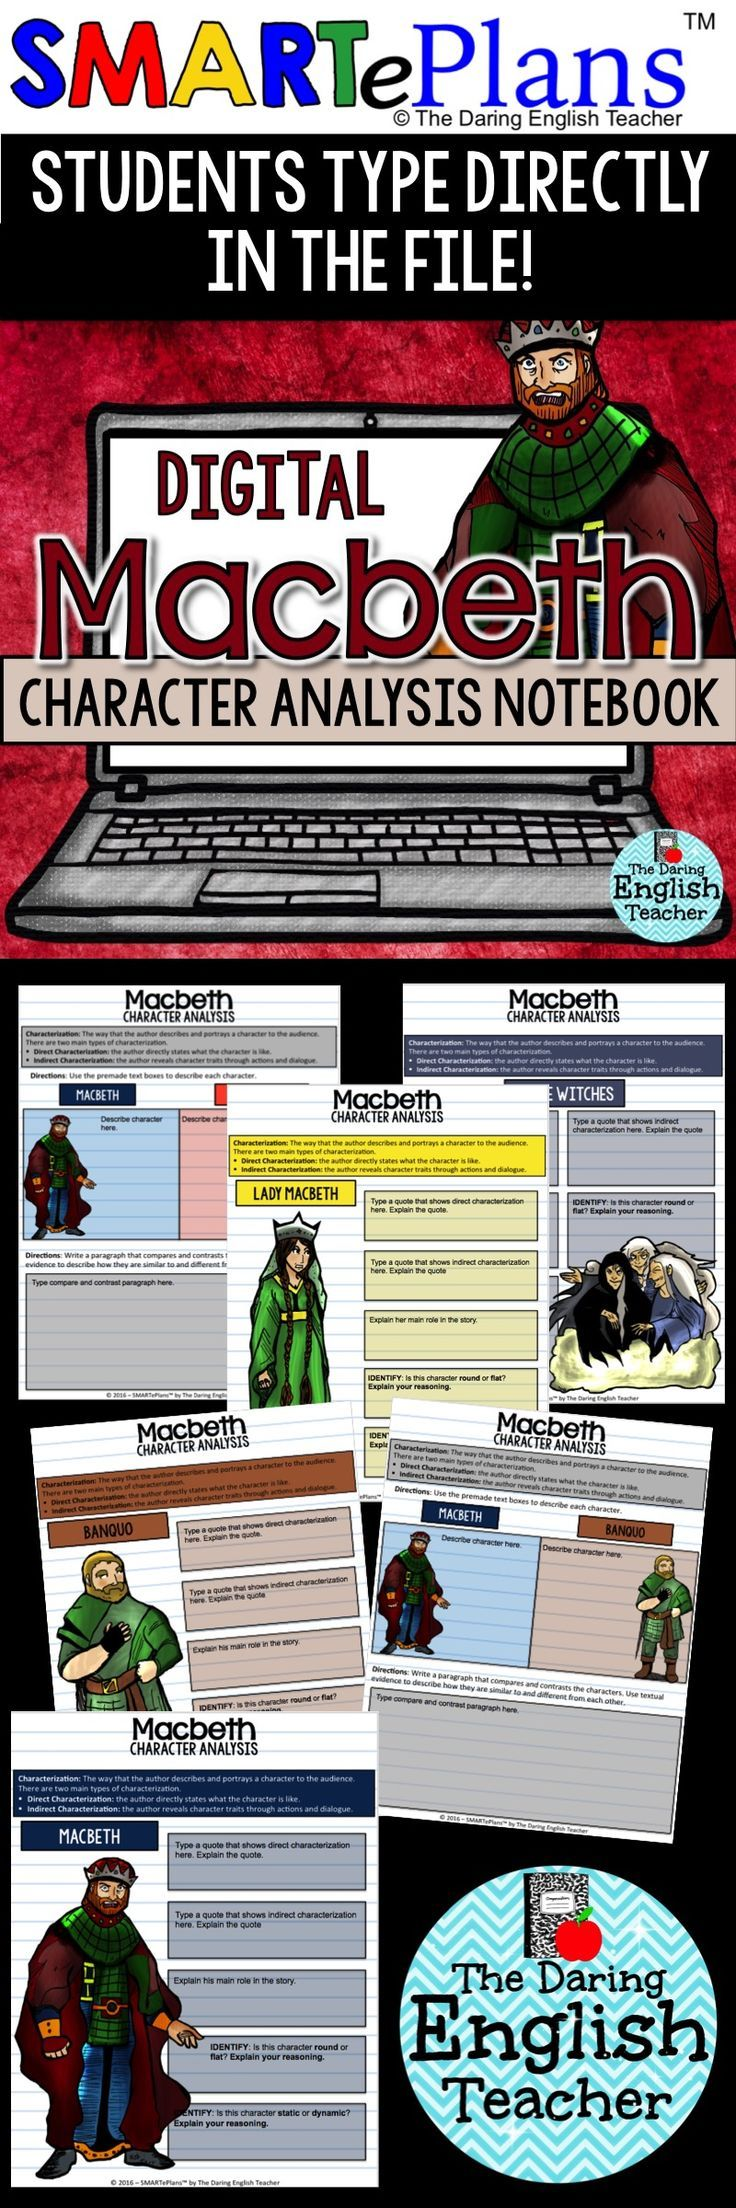 critical essay macbeth best ideas about macbeth analysis  best ideas about macbeth analysis shakespeare digital macbeth character analysis notebook for google drive analyze each macbeth essay question